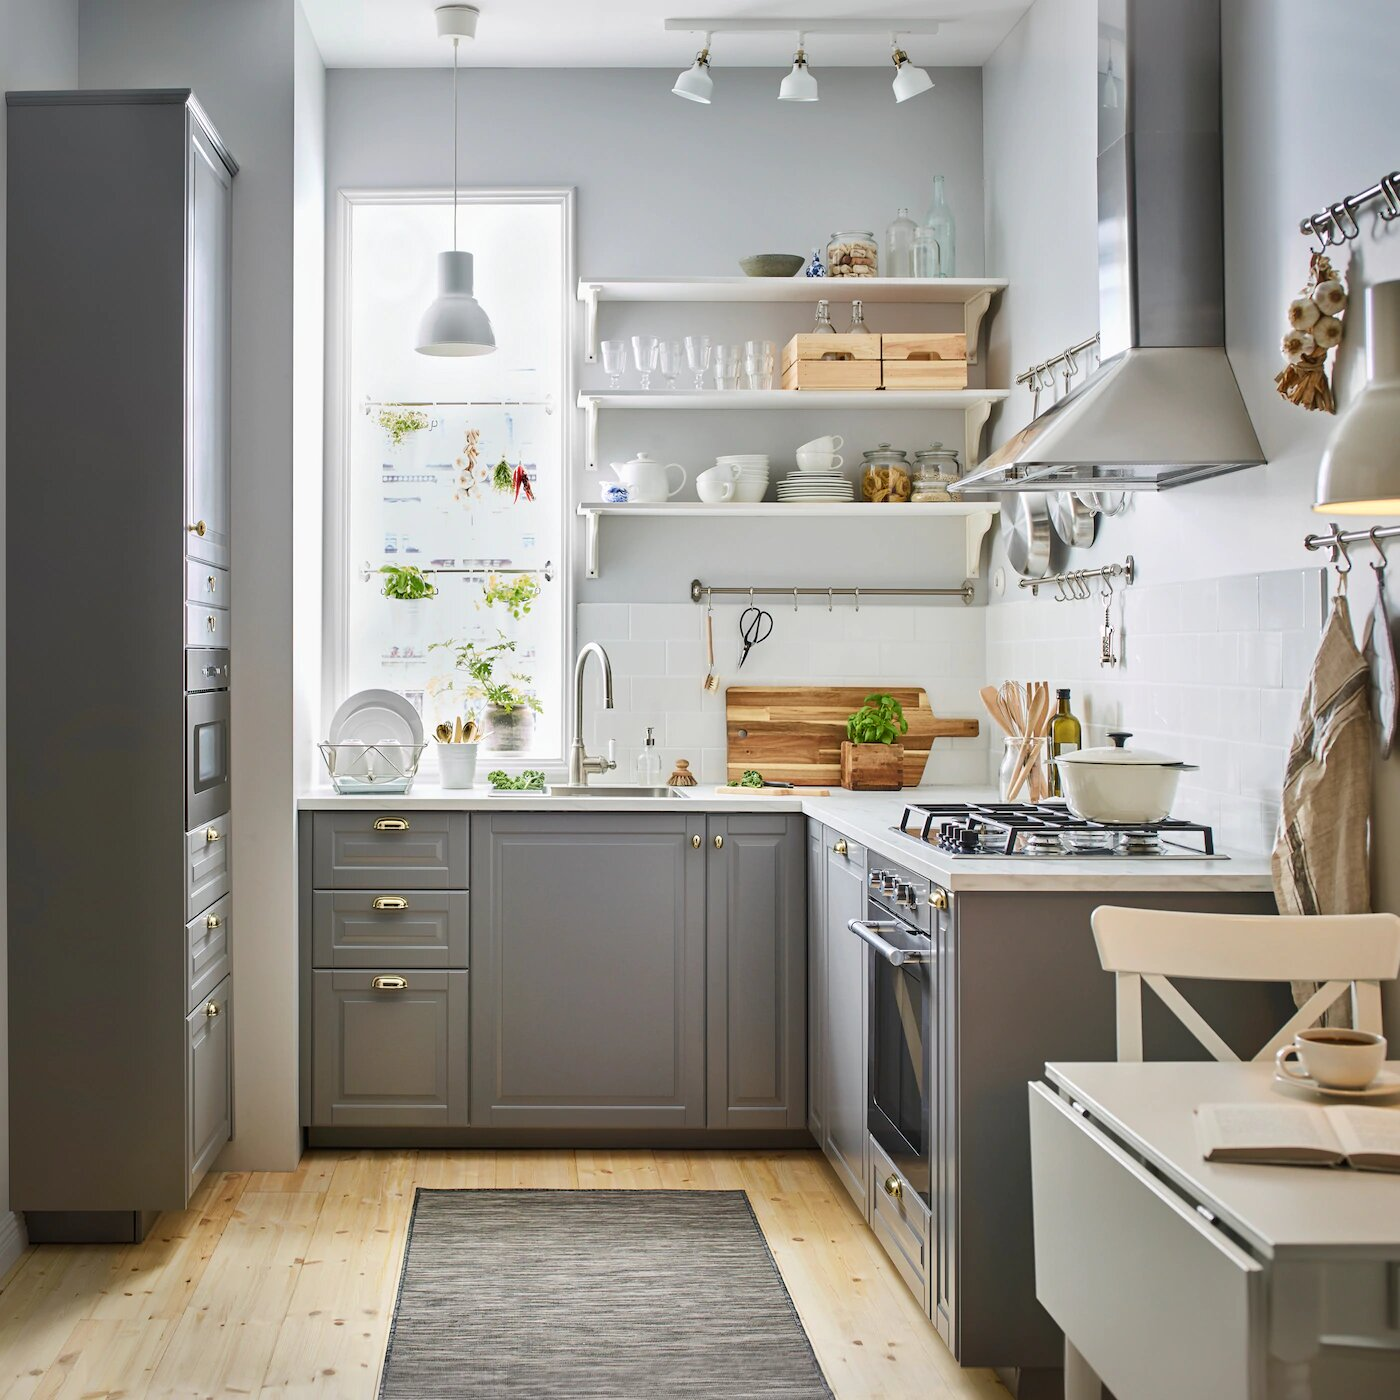 Find a Kitchen That Matches Your Taste | Decoholic